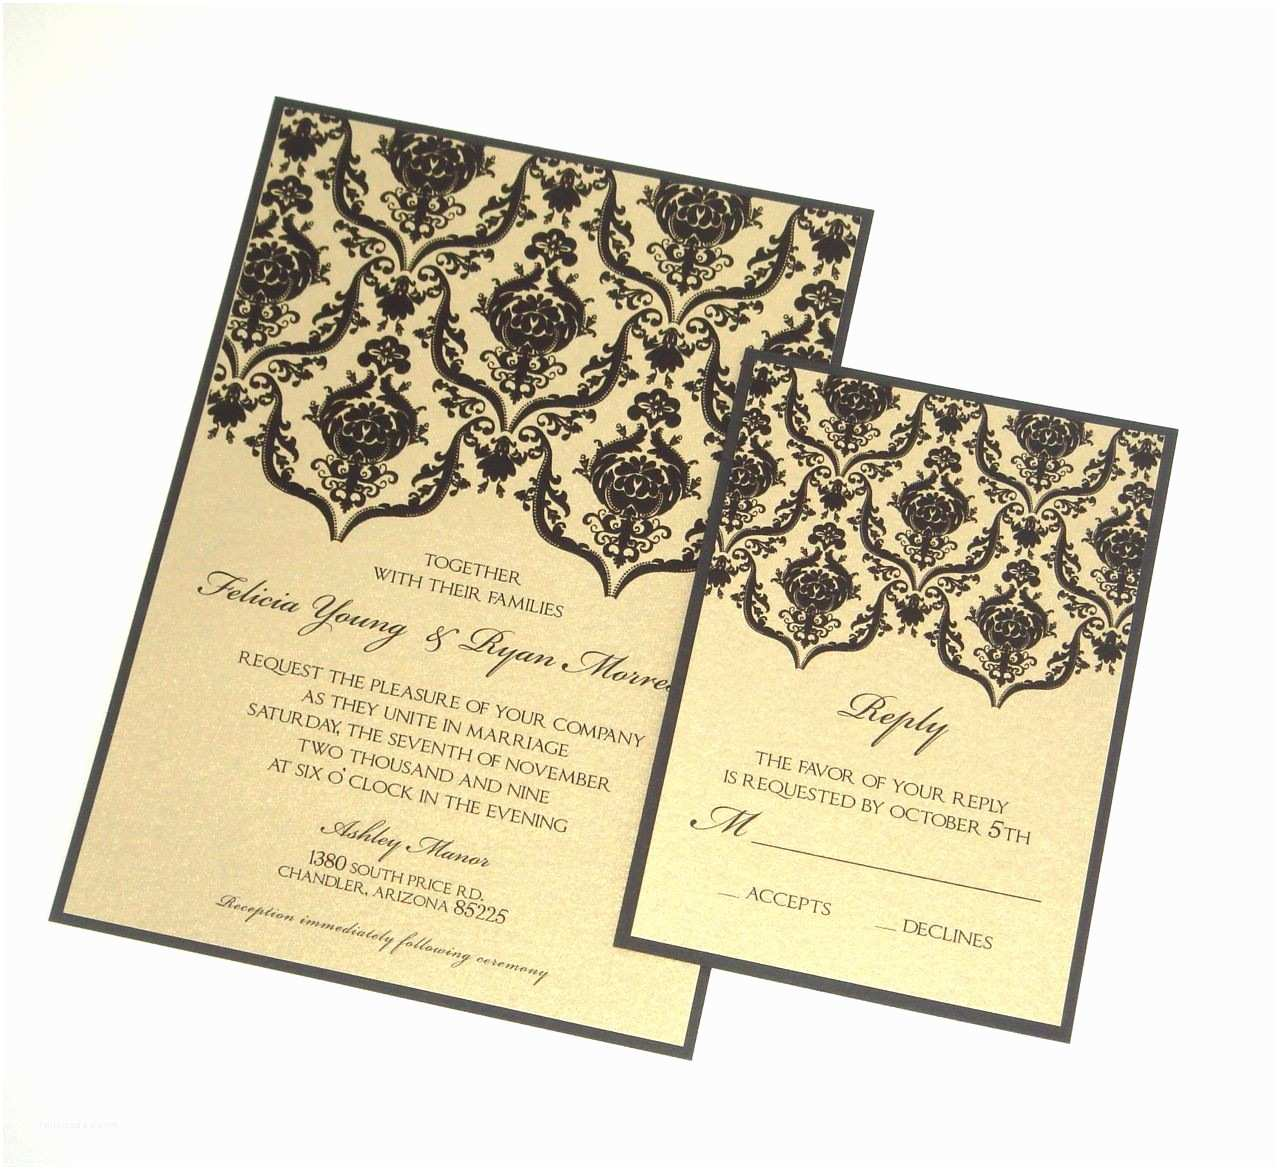 Elegant Black and Gold Wedding Invitations Black and Gold Wedding Invitations Modern Designs